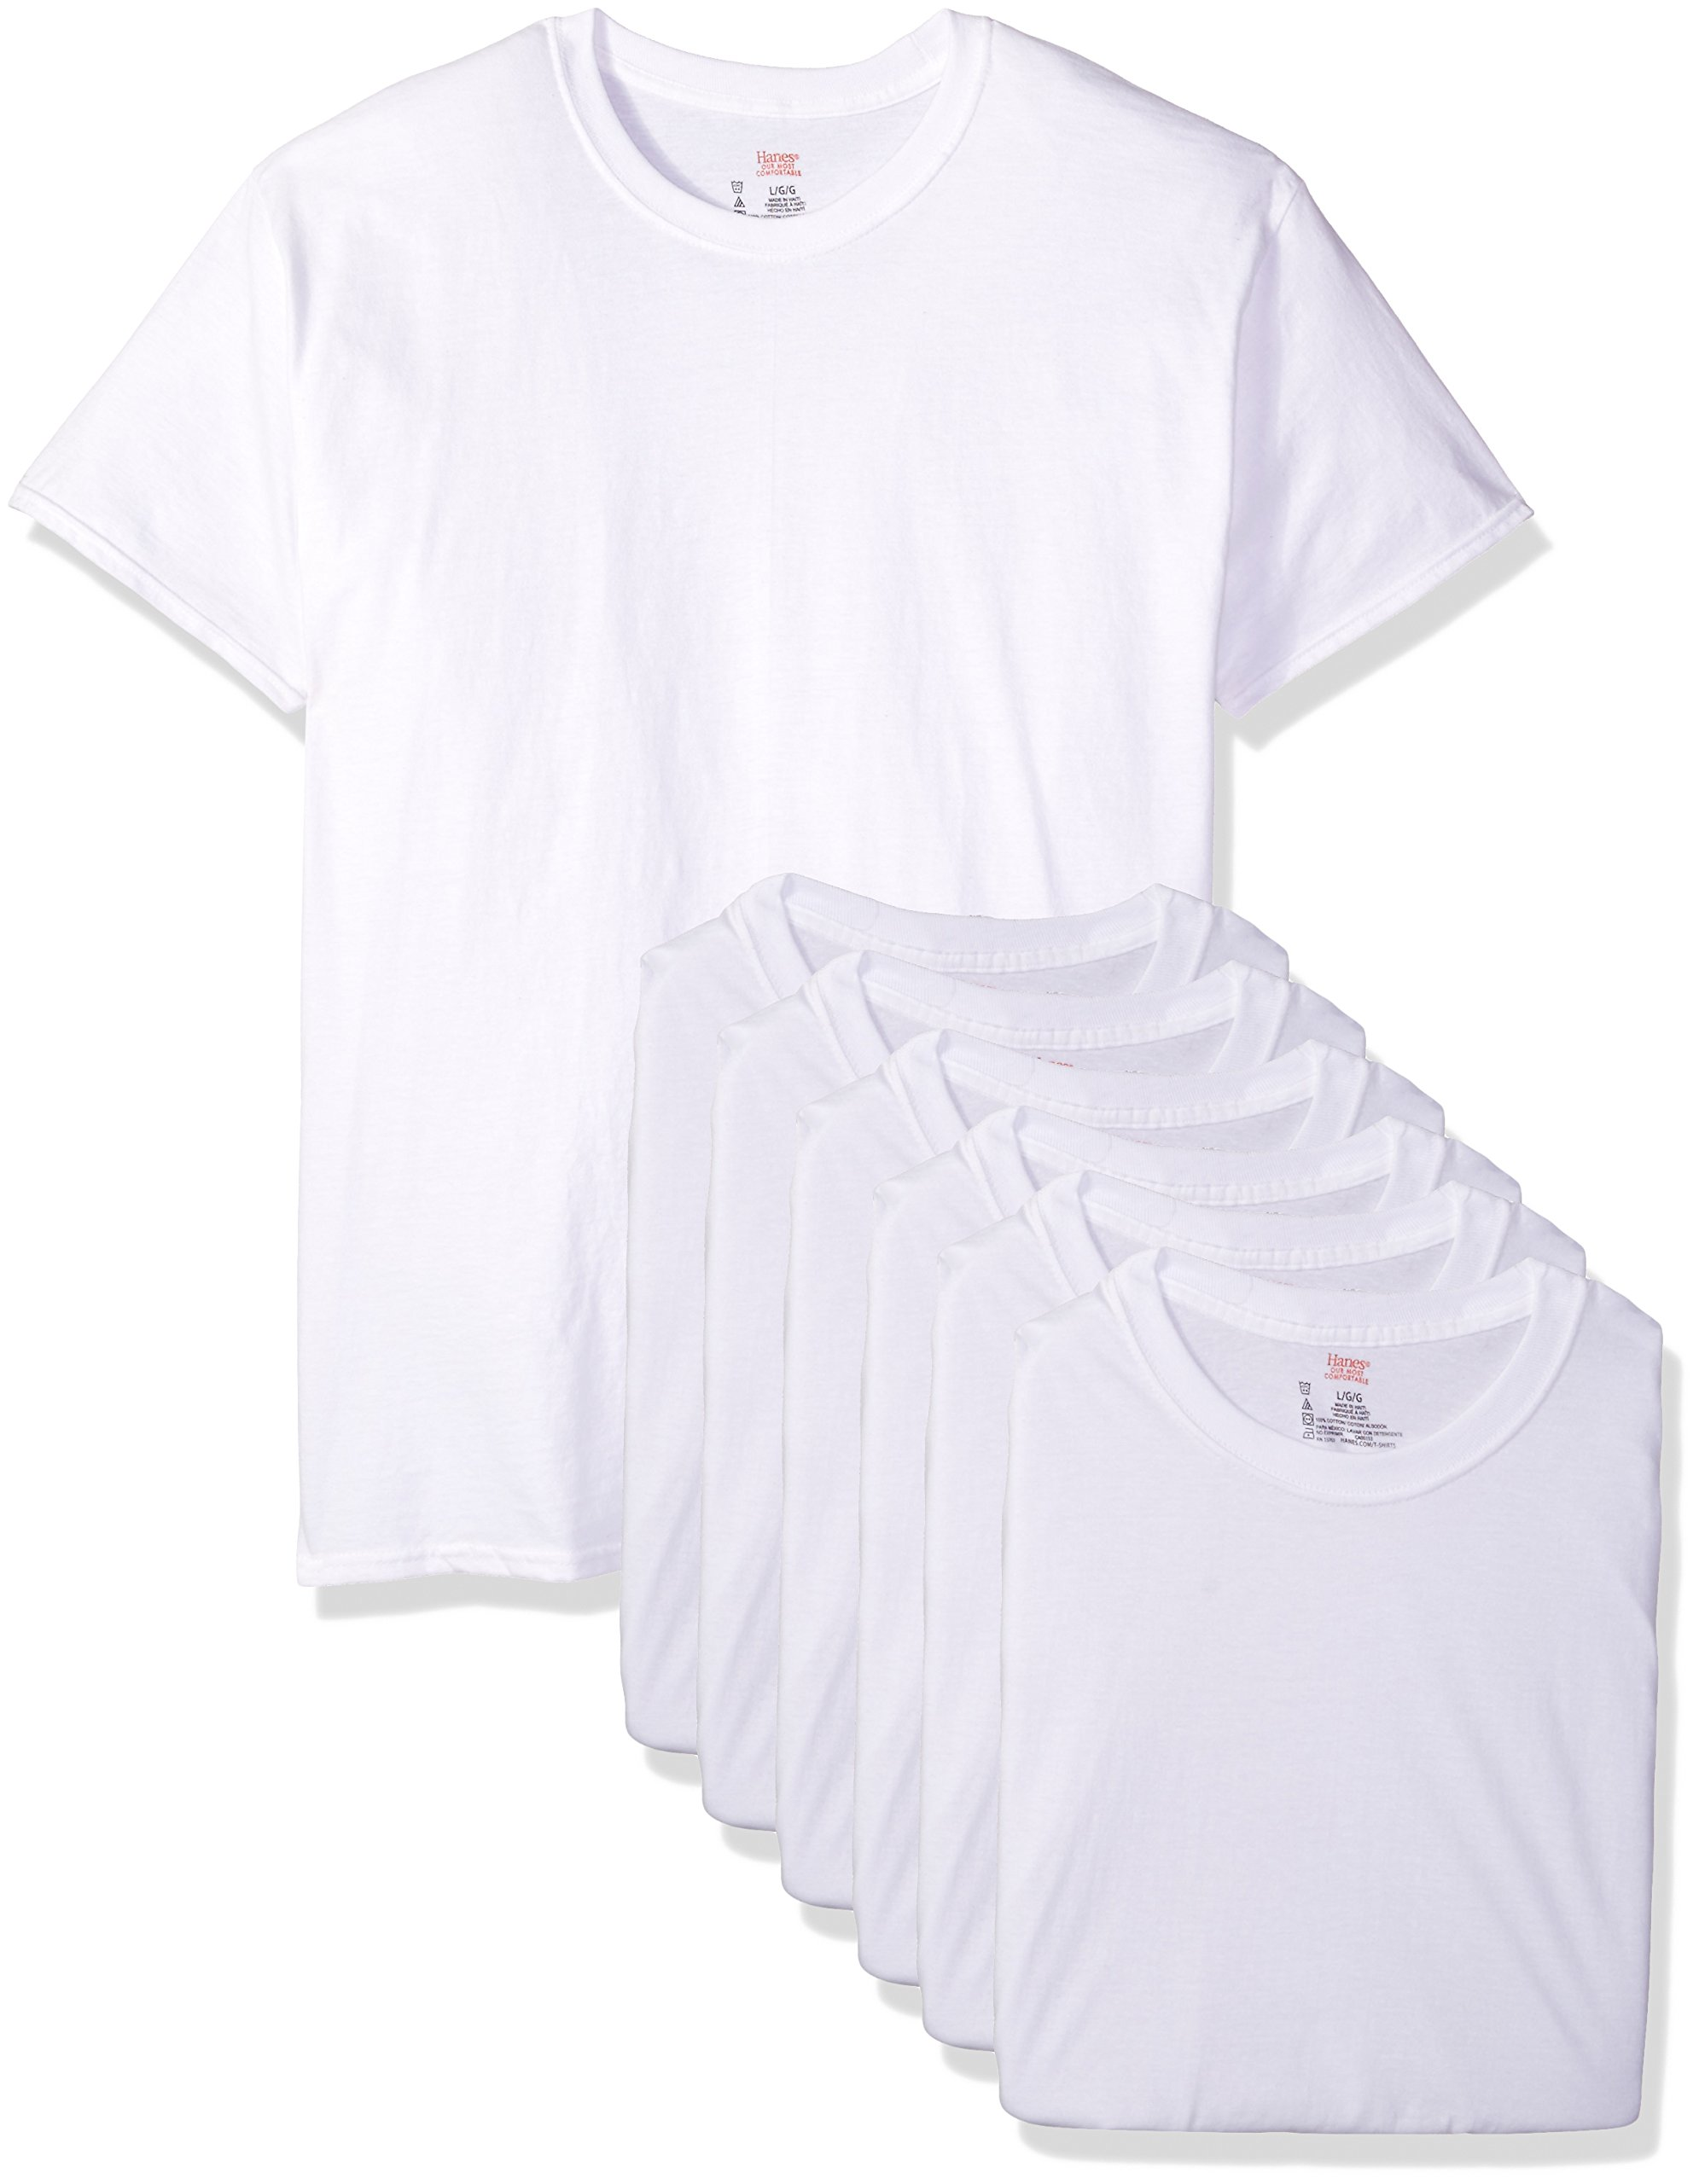 Hanes Ultimate Men's 6-Pack Crew Neck Tee, White, Large